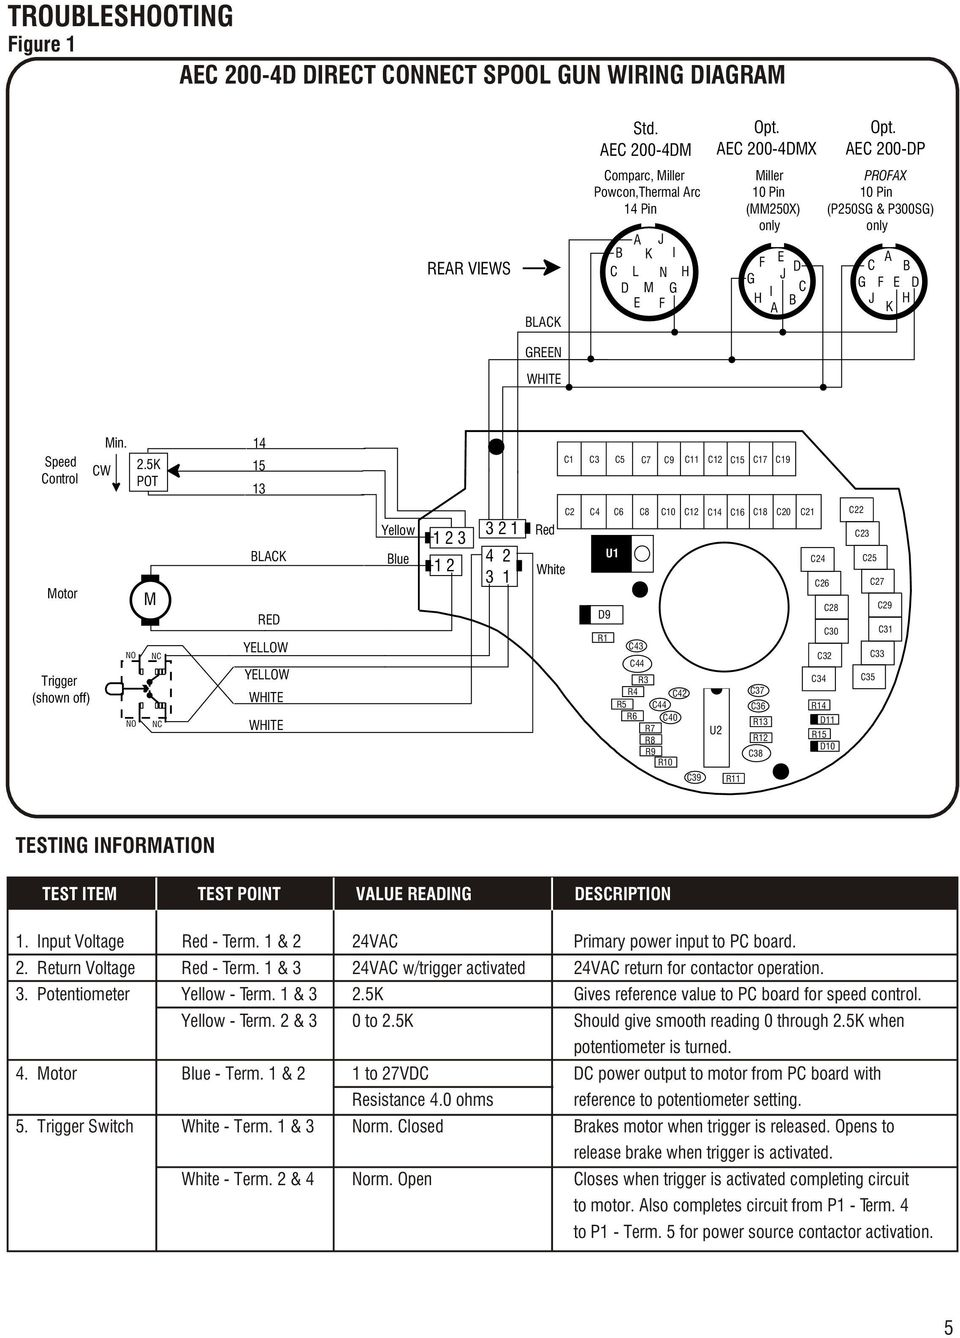 AEC 200-4D DIRECT CONNECT SOLID STATE SPOOL GUN OPERATION AND PARTS MANUAL  DIRECT CONNECTS TO: MILLER & PROFAX CV POWER SOURCES - PDF Free DownloadDocPlayer.net